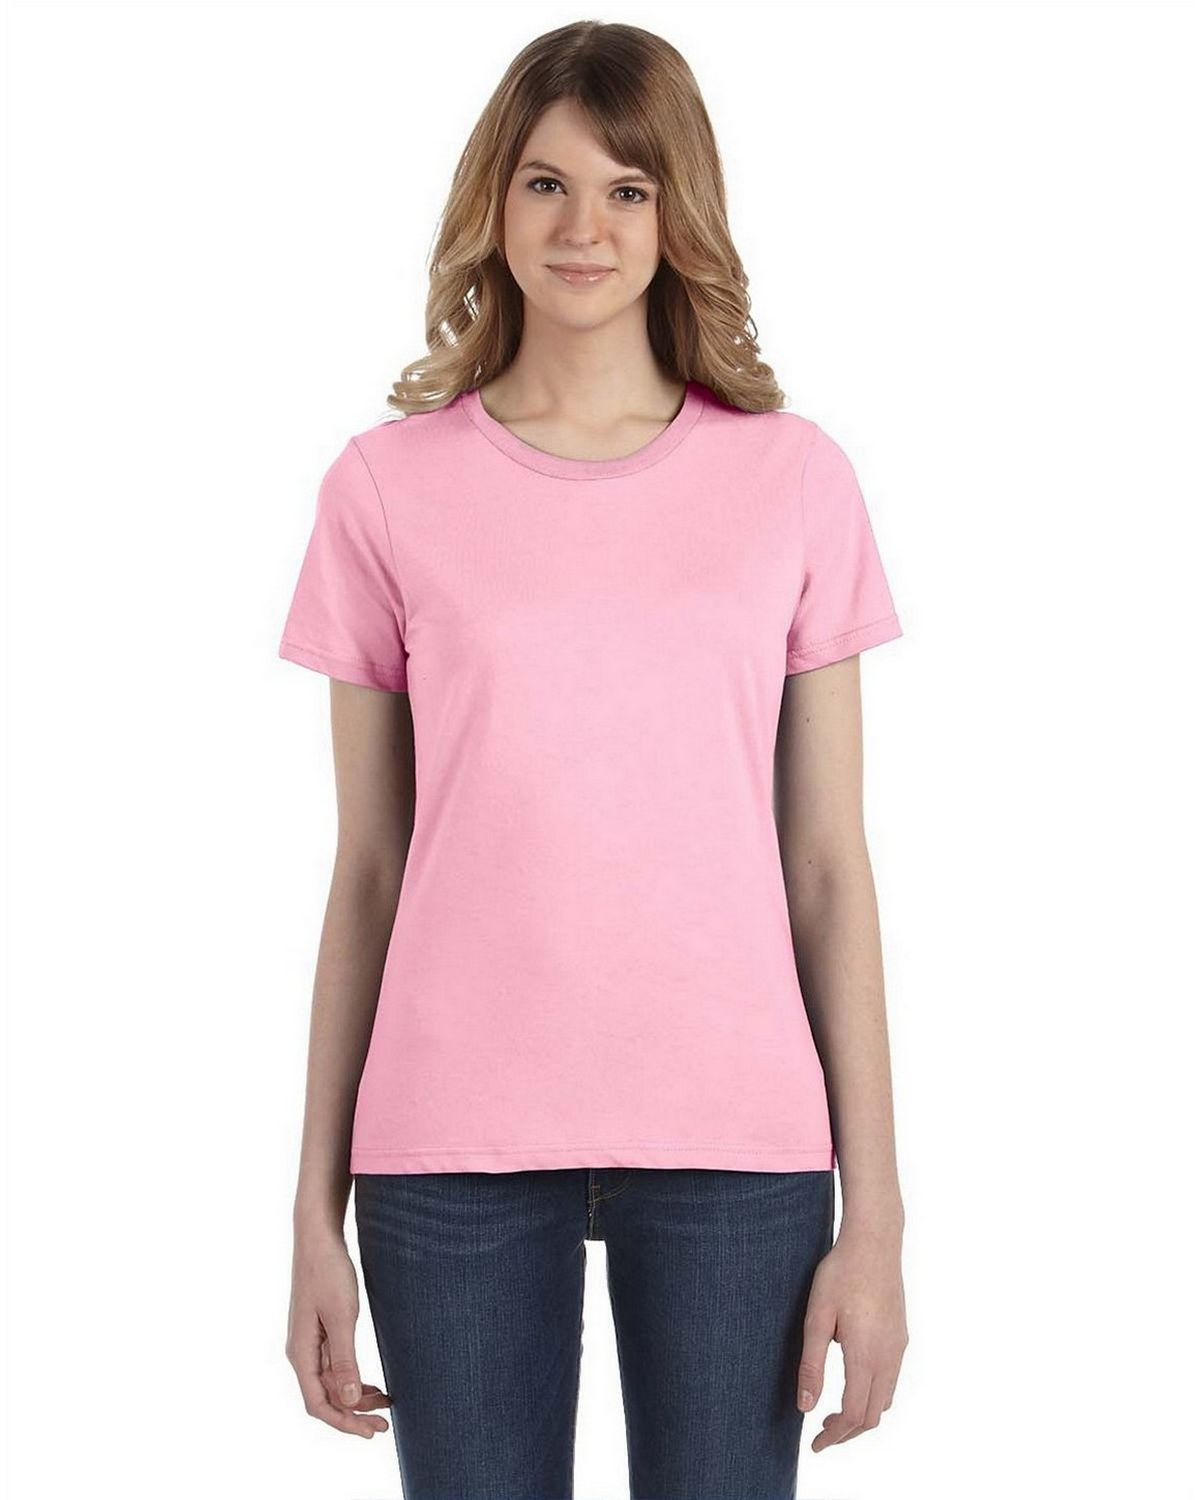 Ringspun T Shirt >> Buy Anvil 880 Ladies Ringspun Cotton Fashion Fit T Shirt